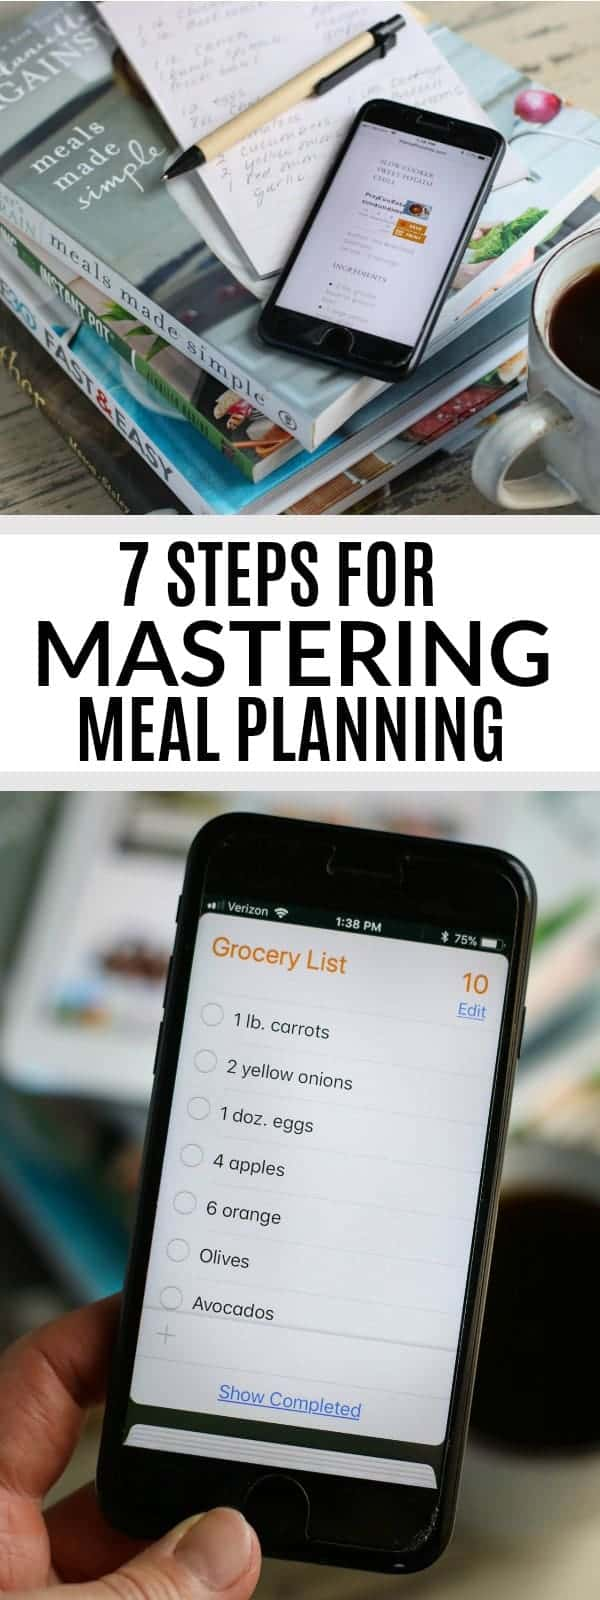 7 Steps for Mastering Meal Planning in 2018   meal planning tips   meal planning made easy   how to meal plan   meal planning ideas   healthy meal planning tips    The Real Food Dietitians #mealplanning #healthymealplanning #mealplanningtips